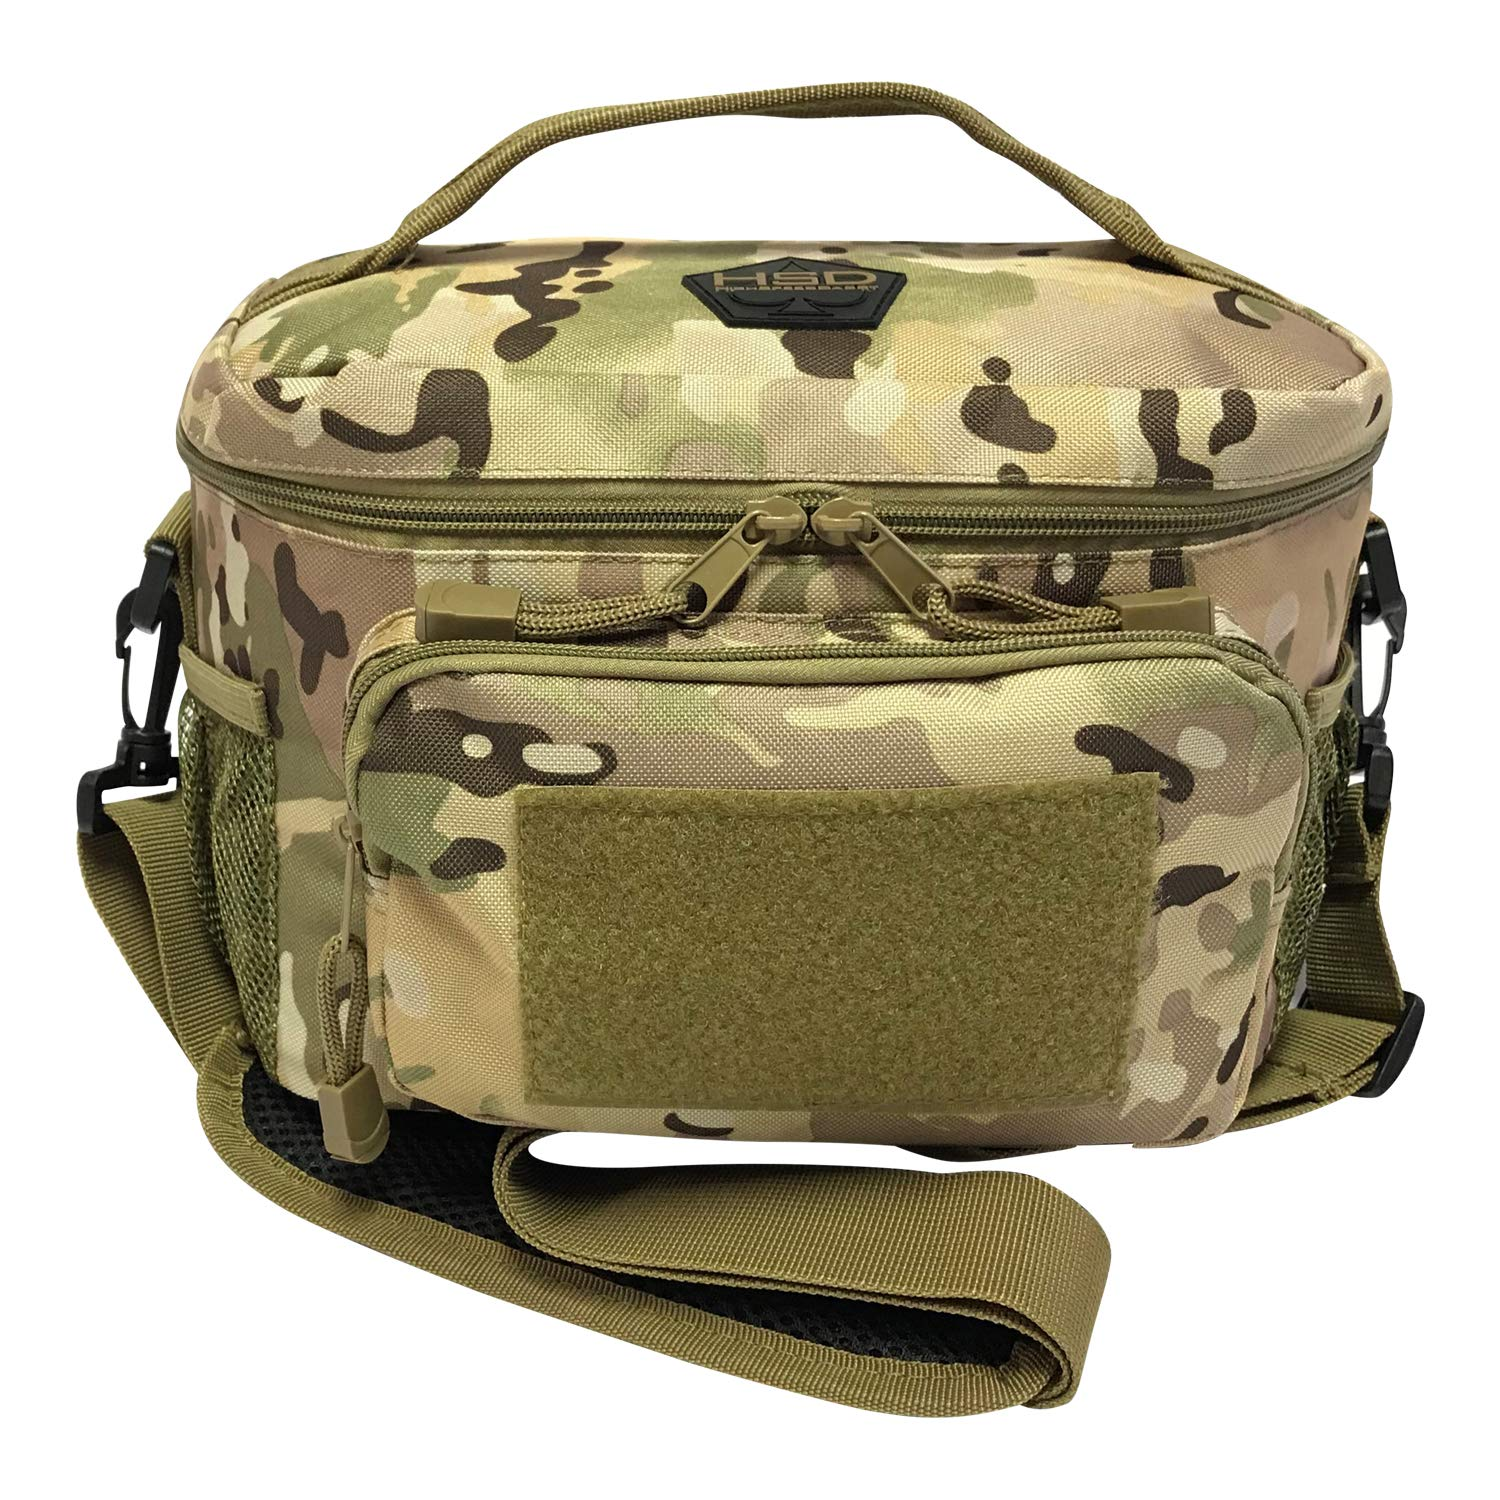 bba011508401 Amazon.com  HSD Tactical Lunch Bag - Insulated Cooler